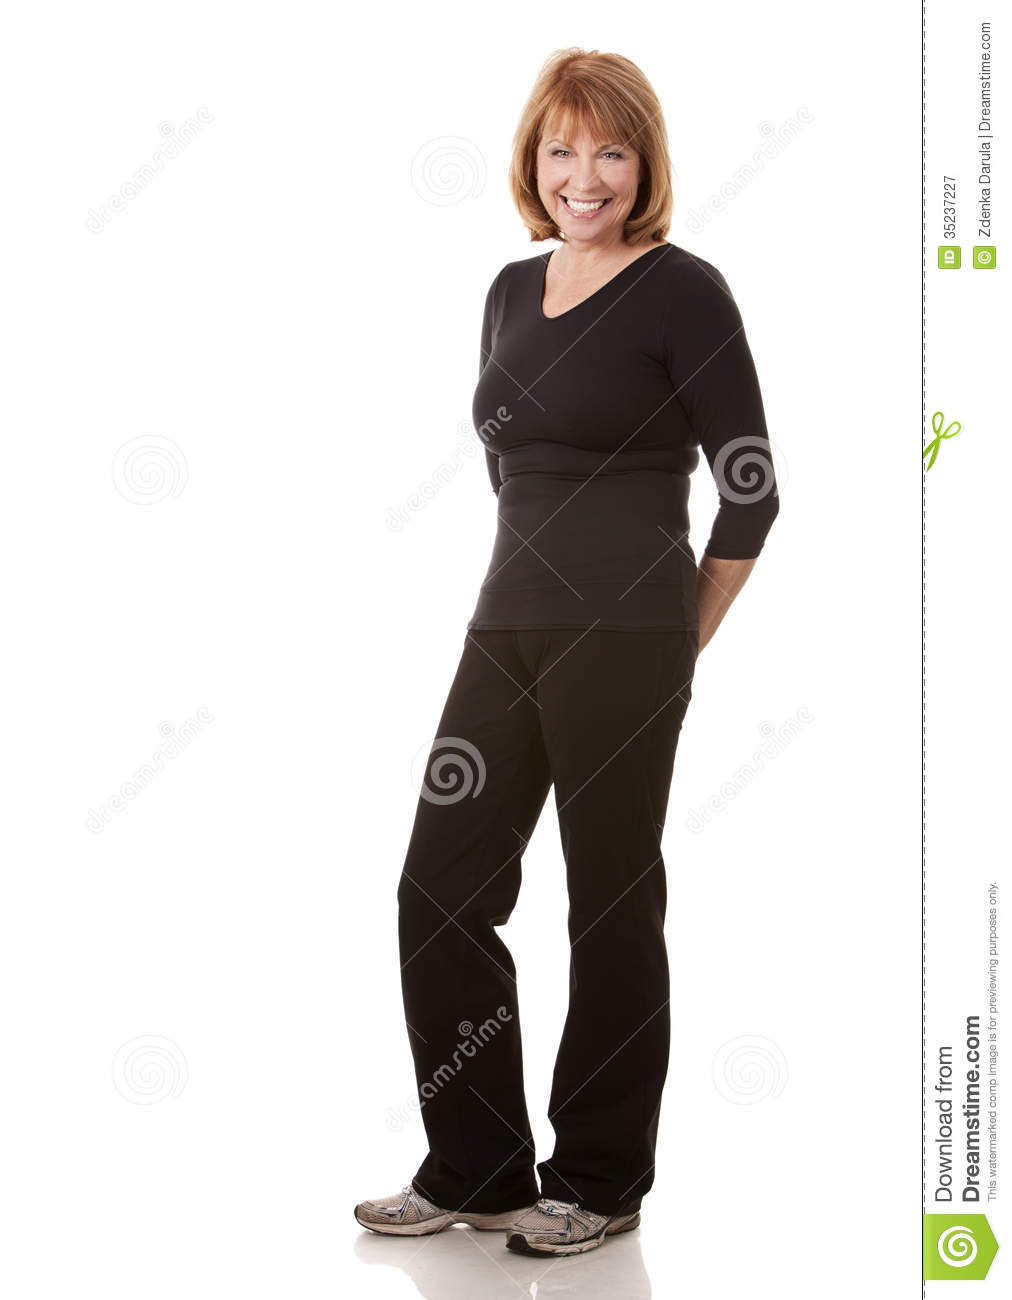 Fitness Mature Woman Royalty Free Stock Photography - Image 35237227-3872